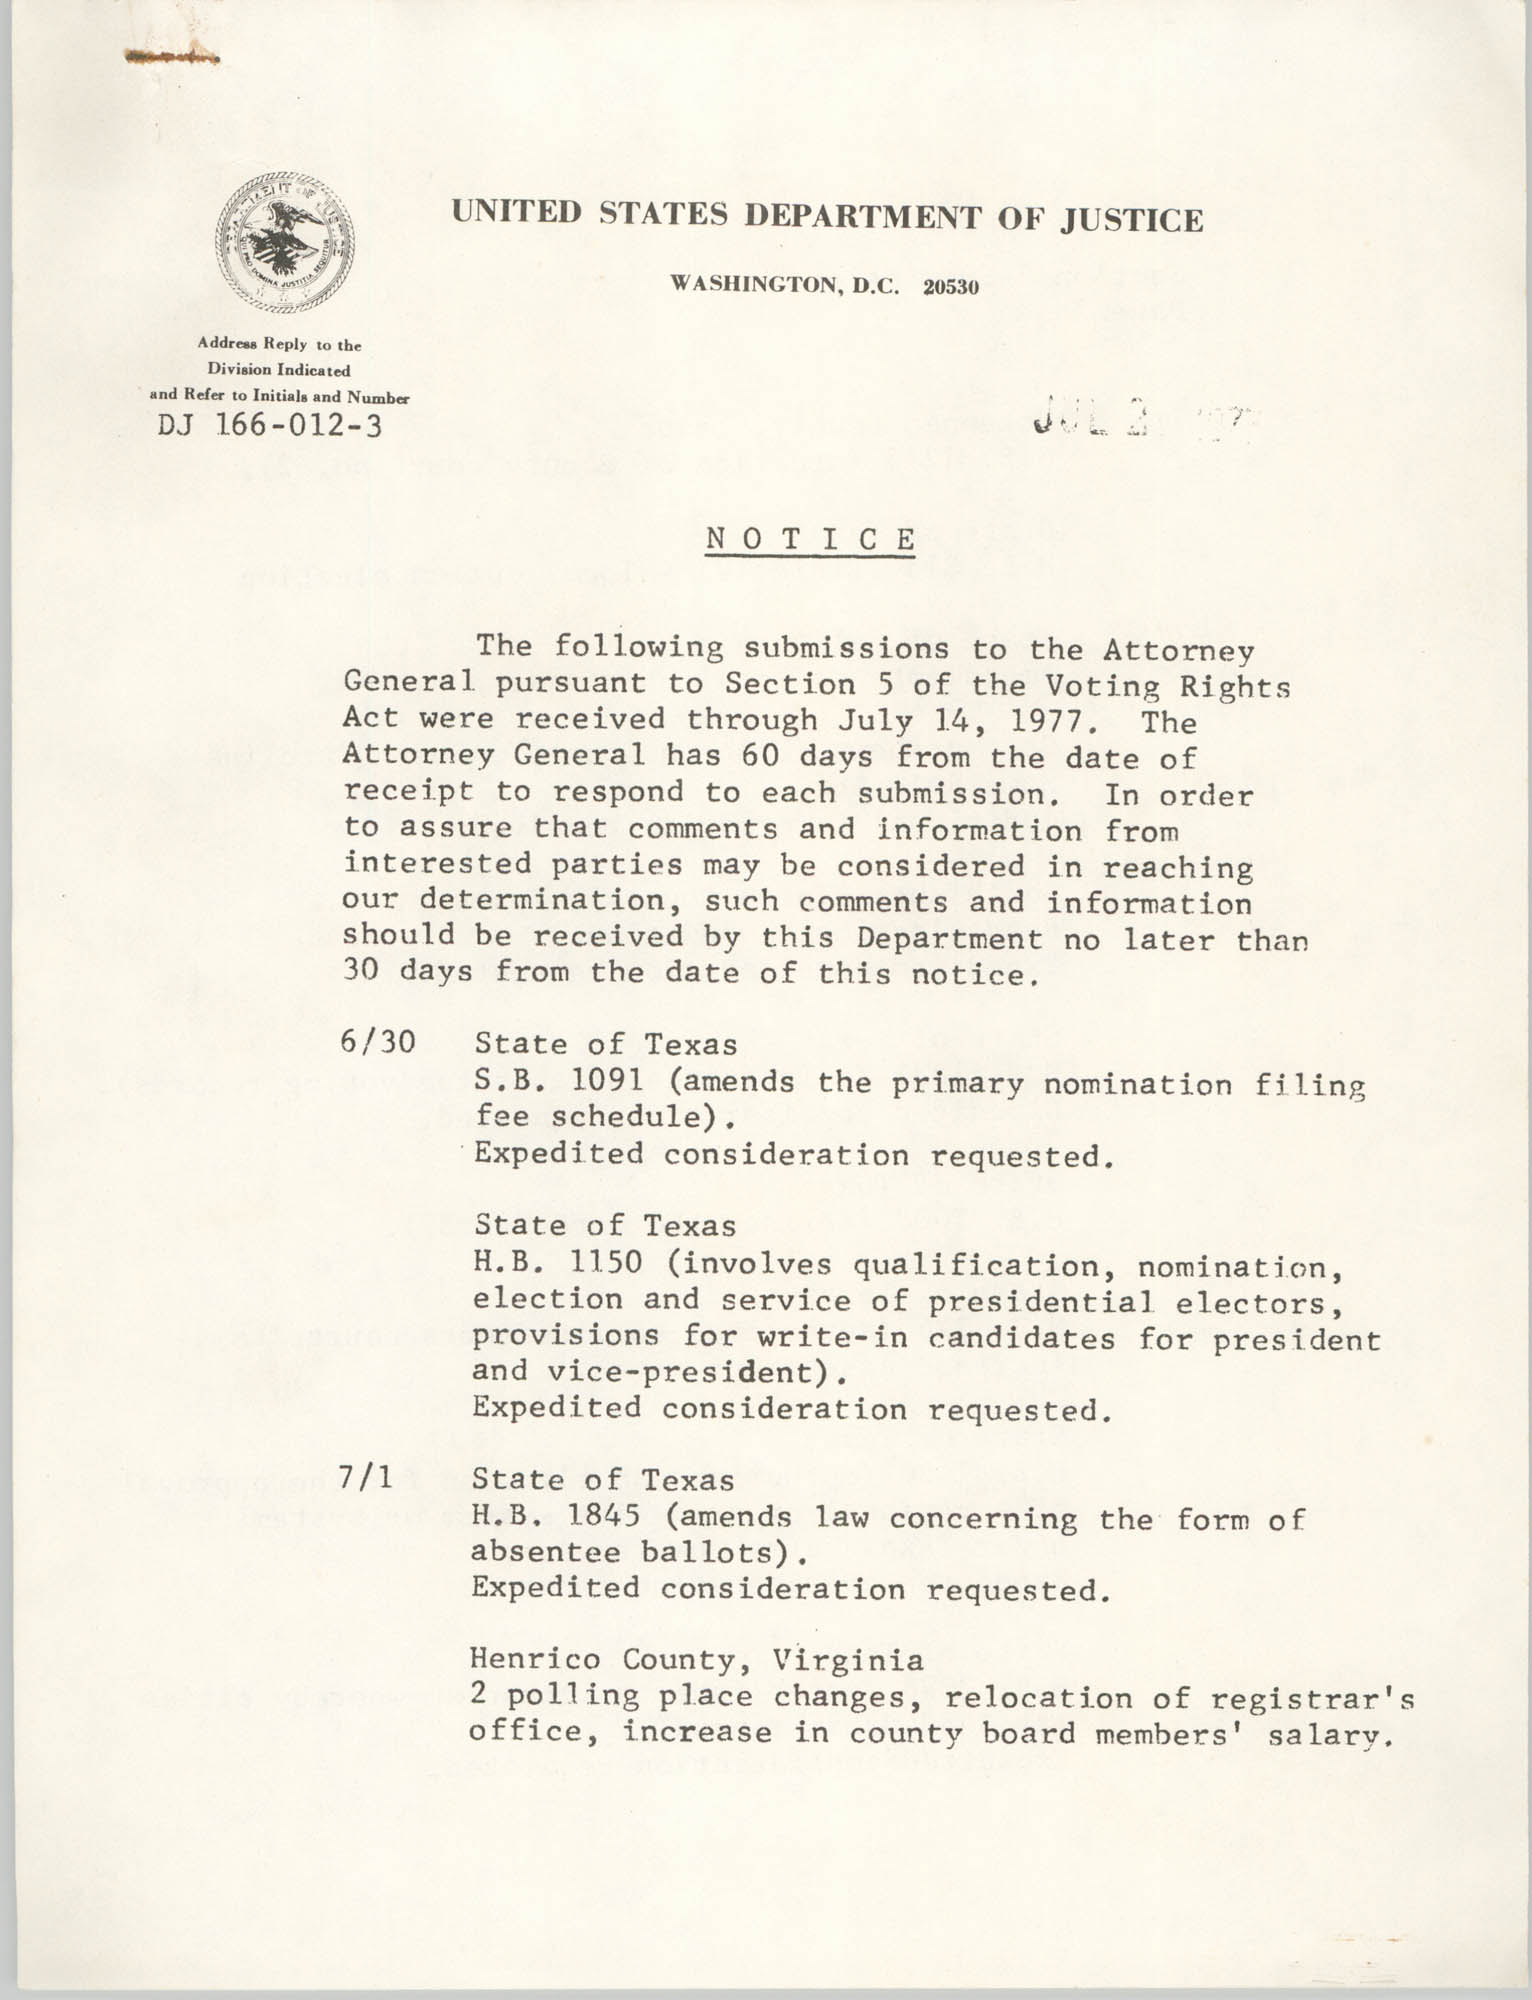 United States Department of Justice Notice, July 14, 1977, Page 1